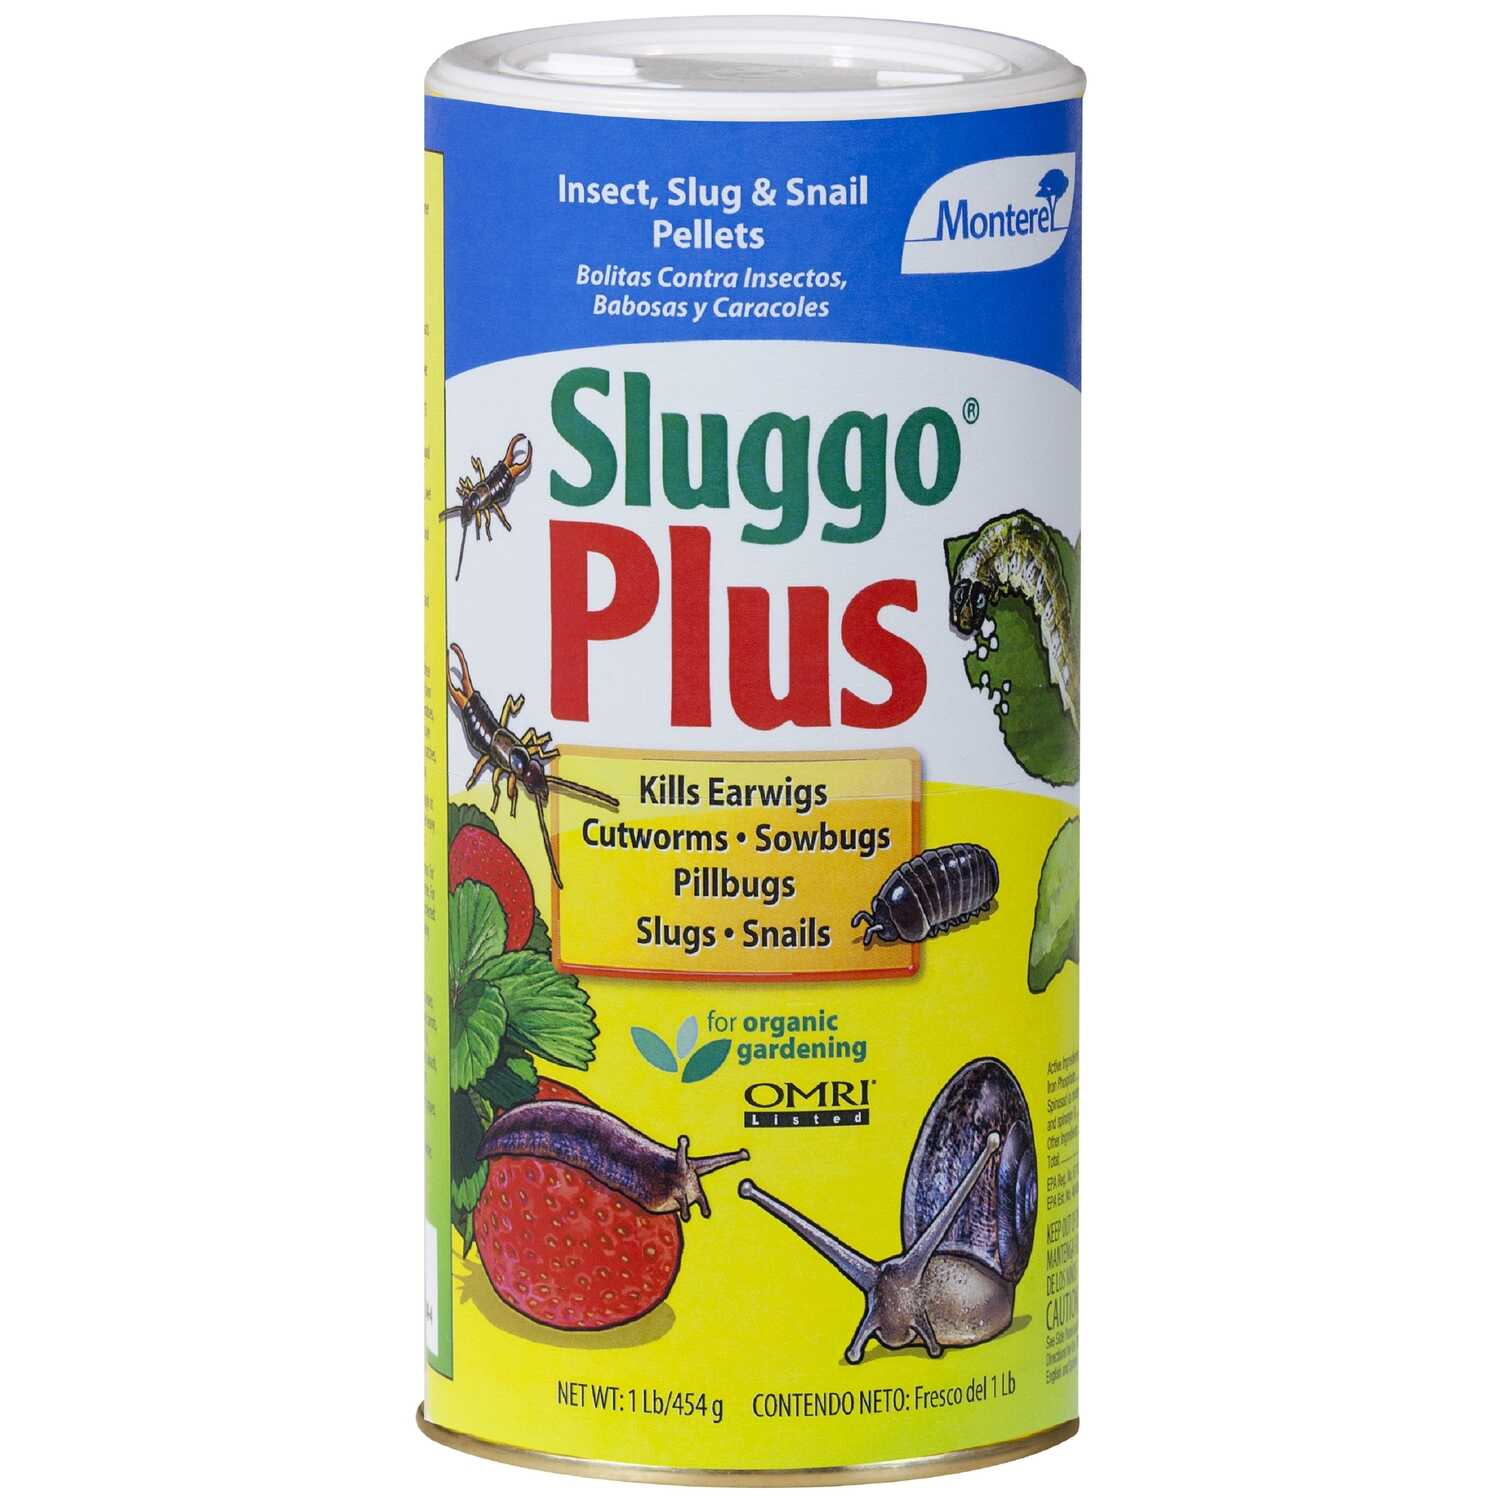 Sluggo Plus  0  Slug and Snail Killer  1 lb.